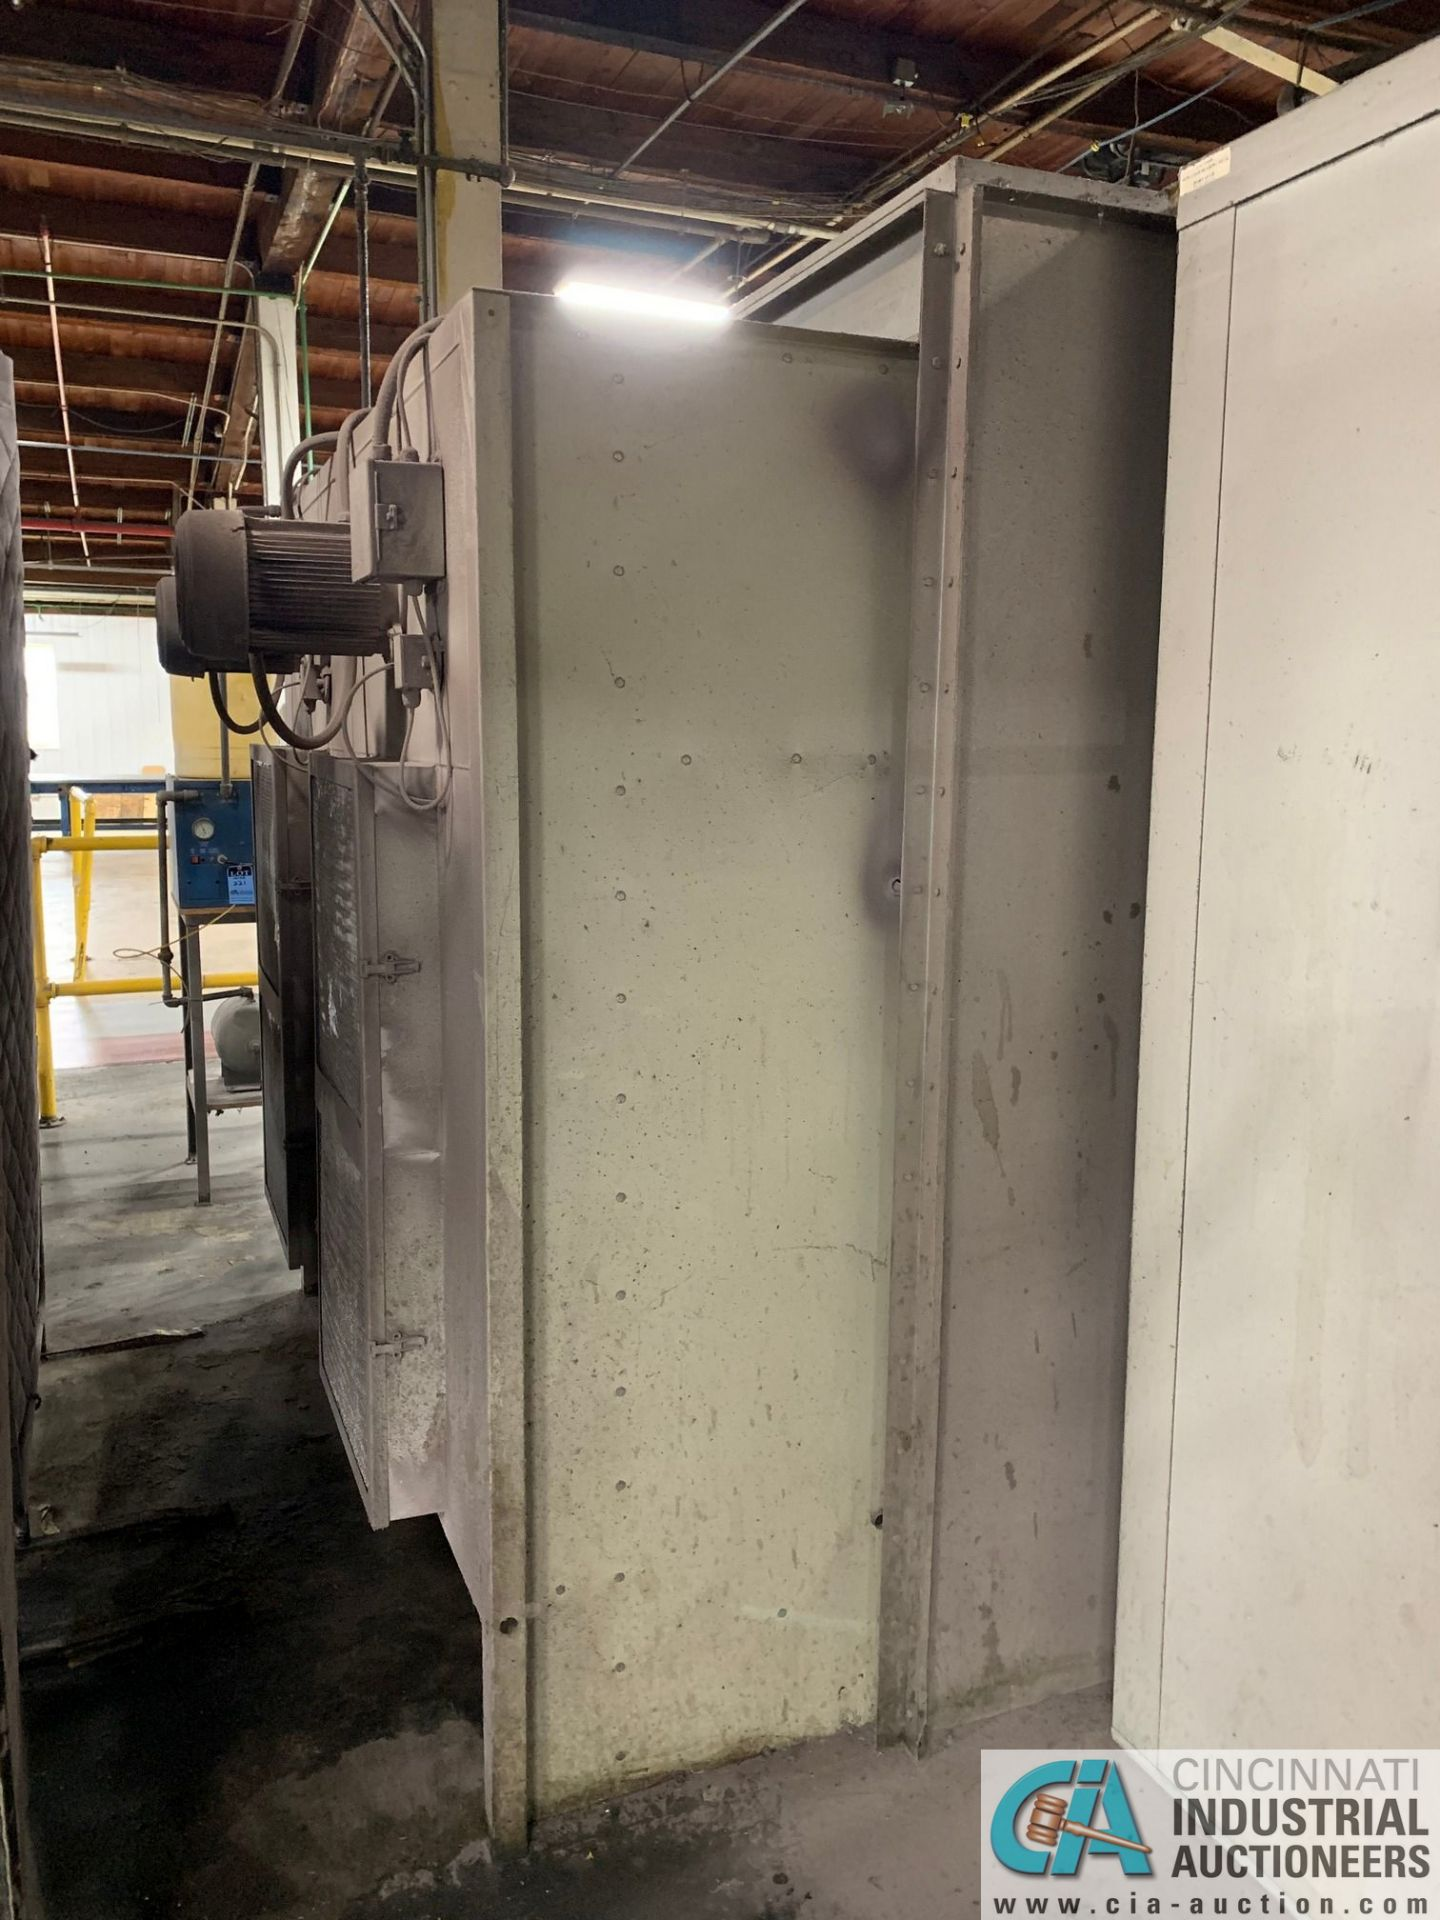 "8' X 6' X 90"" DEIMCO PWI-08-08-06-2-3K POWDER COAT BOOTH - Approx. $30,000 replacement cost - Image 8 of 11"